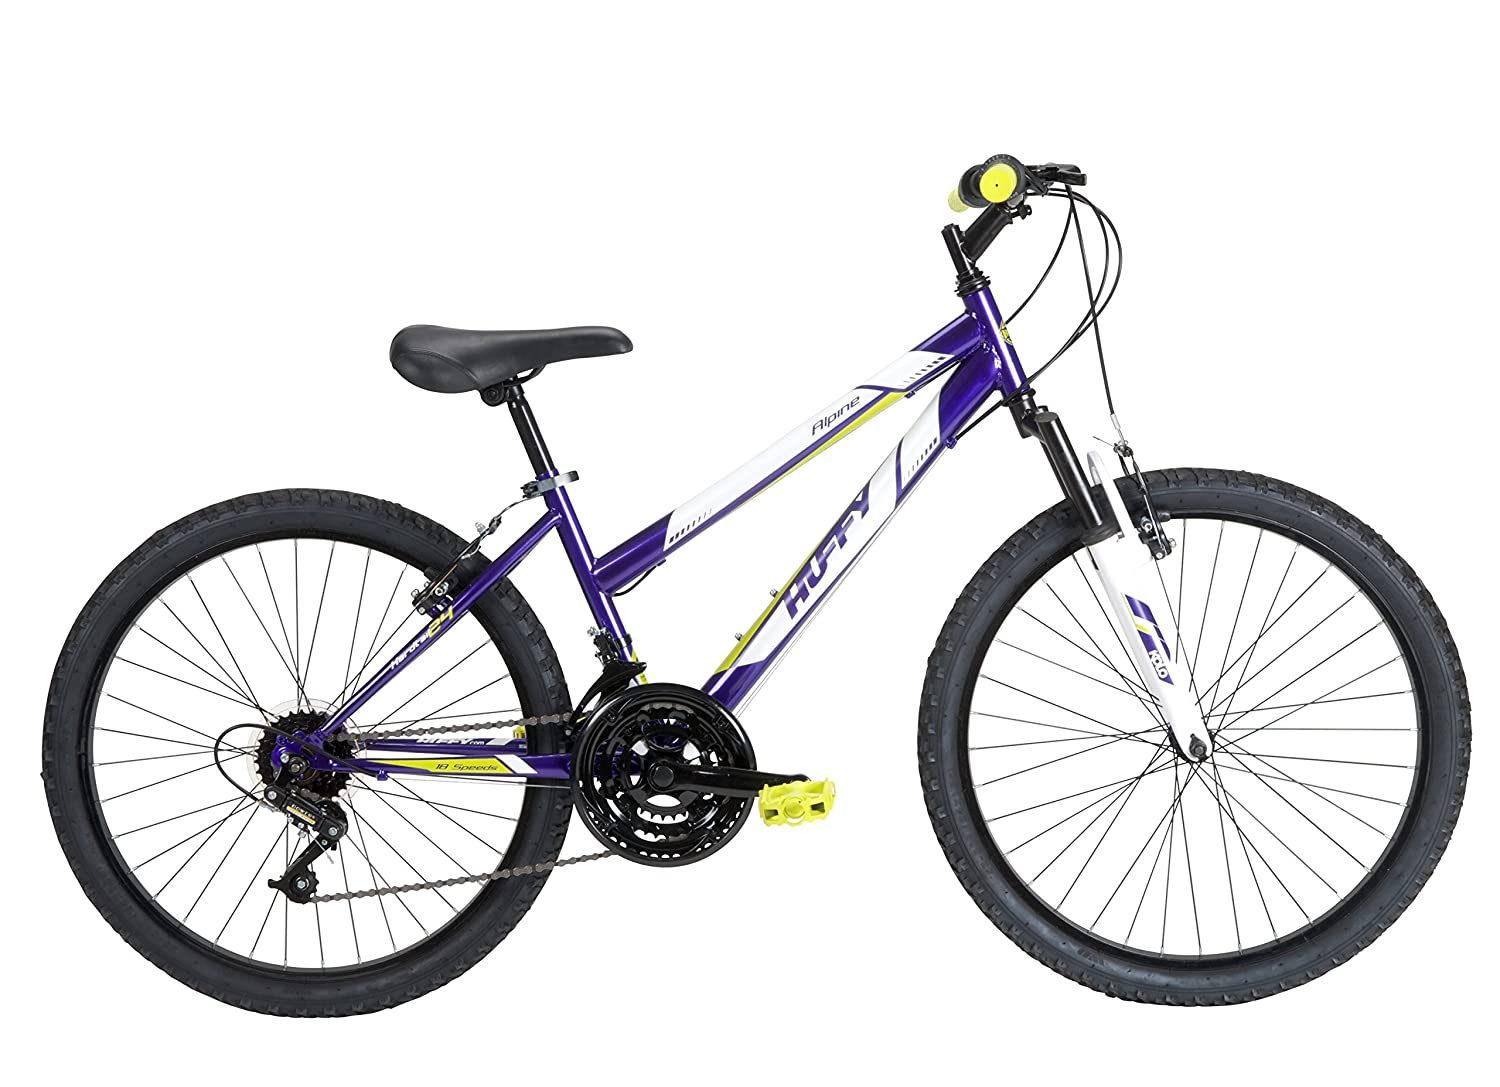 Bikes For Boys 24 Inch Alpine Bike Inch